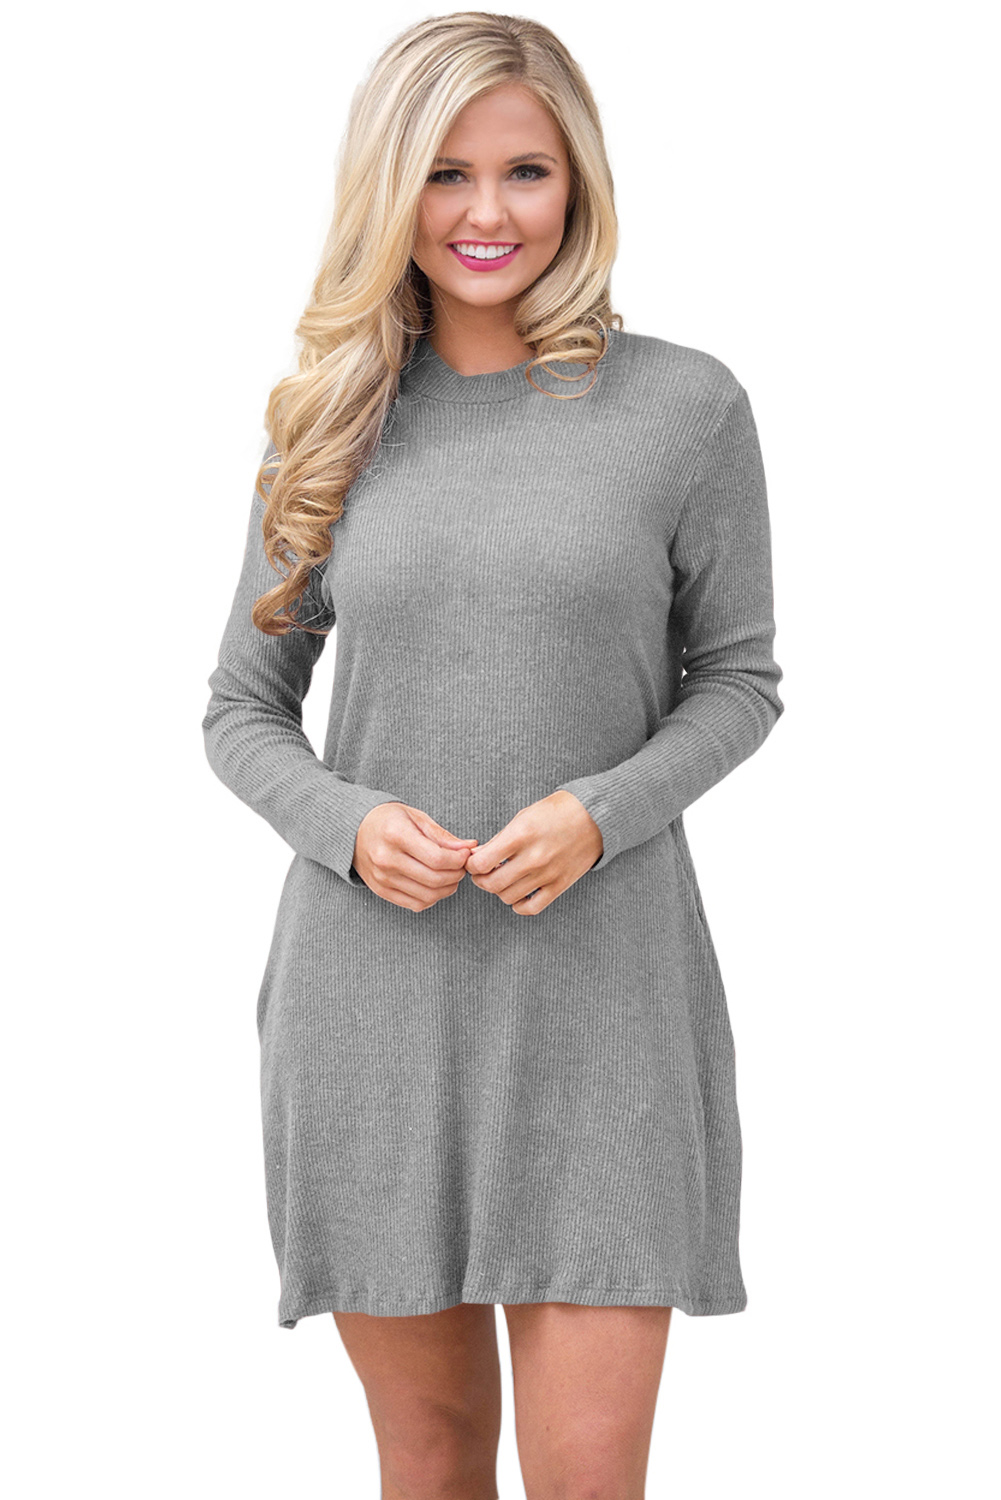 BY27712-11 Gray High Neck Long Sleeve Knit Sweater Dress